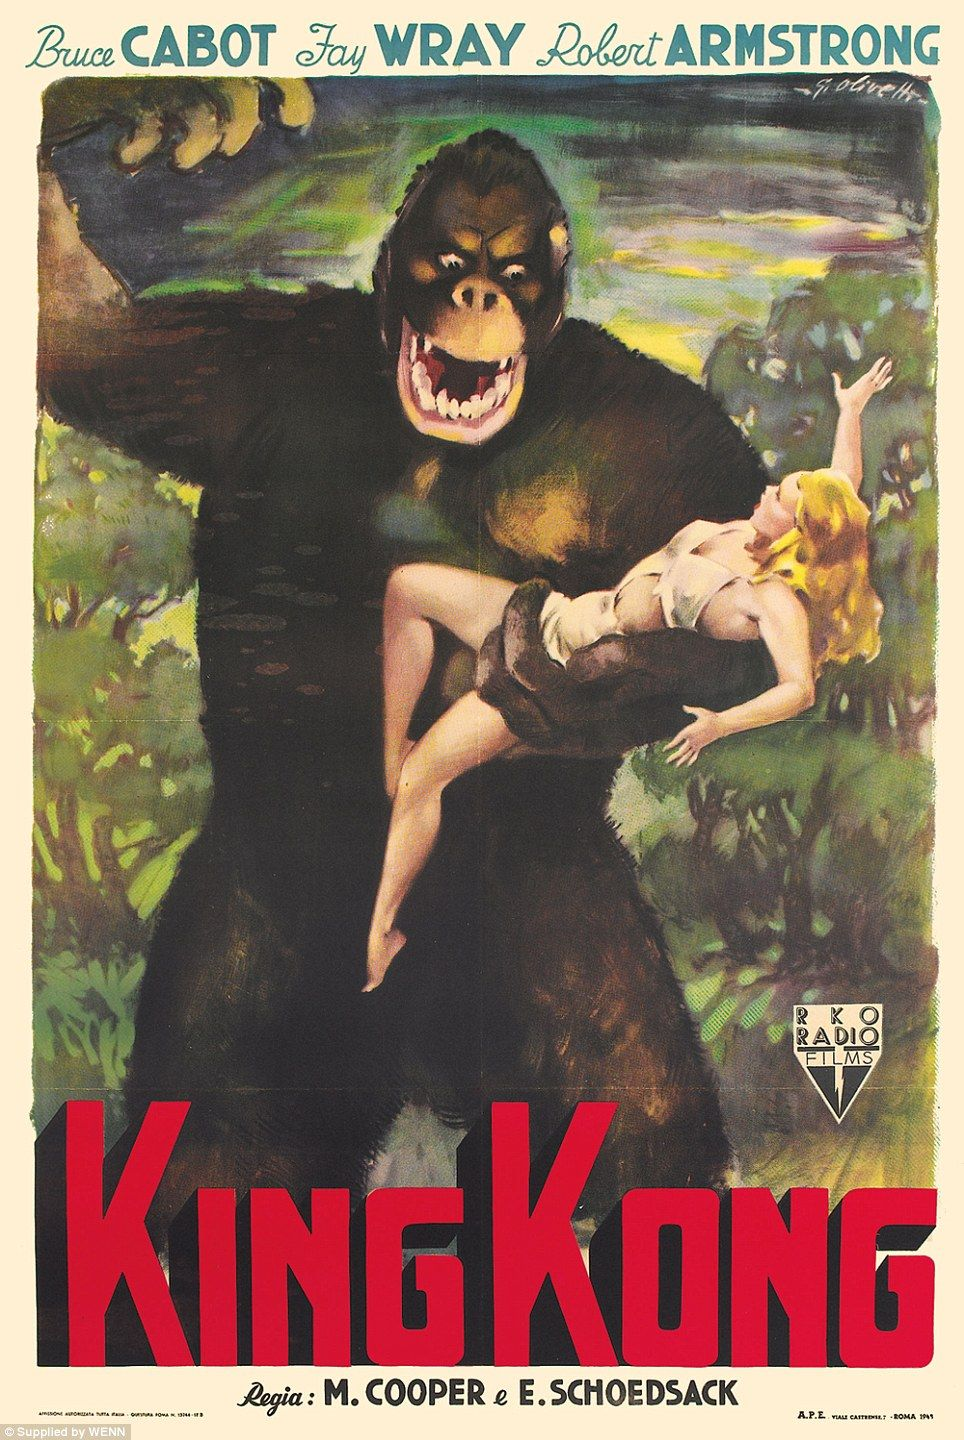 Twas Beauty Killed The Beast But How Much Will They Both Sell For Monsters And Maidens Film Poster Collection Being Auctioned King Kong Movie King Kong King Kong 1933